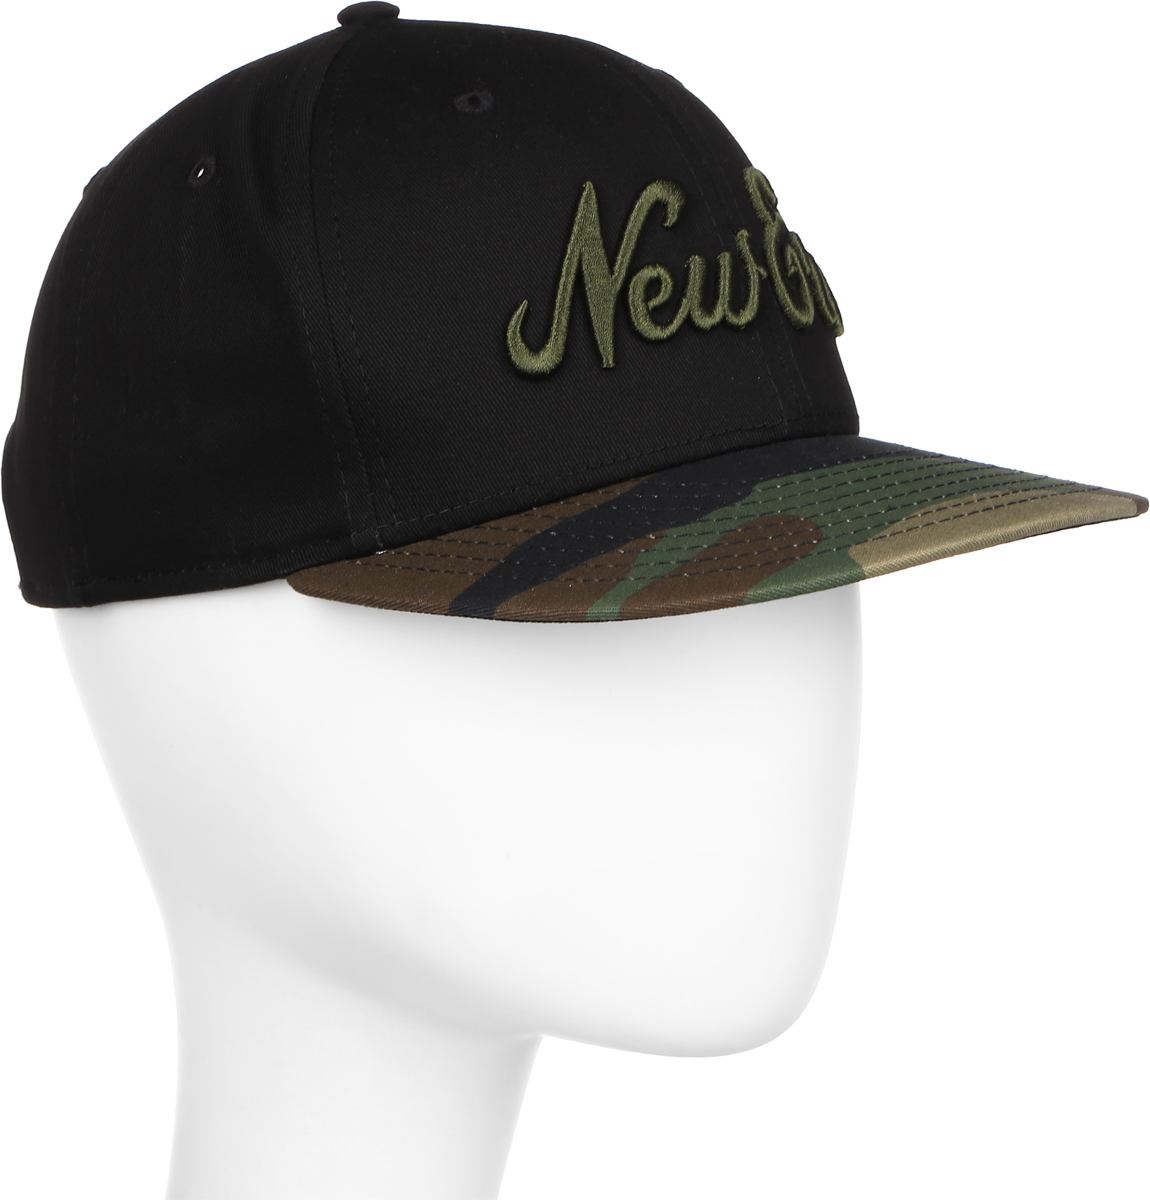 Бейсболка New Era Camo 9fifty, цвет: черный, камуфляж. 11379753-BLK. Размер S/M (54/57) new era бейсболка new era 615 character 9fifty